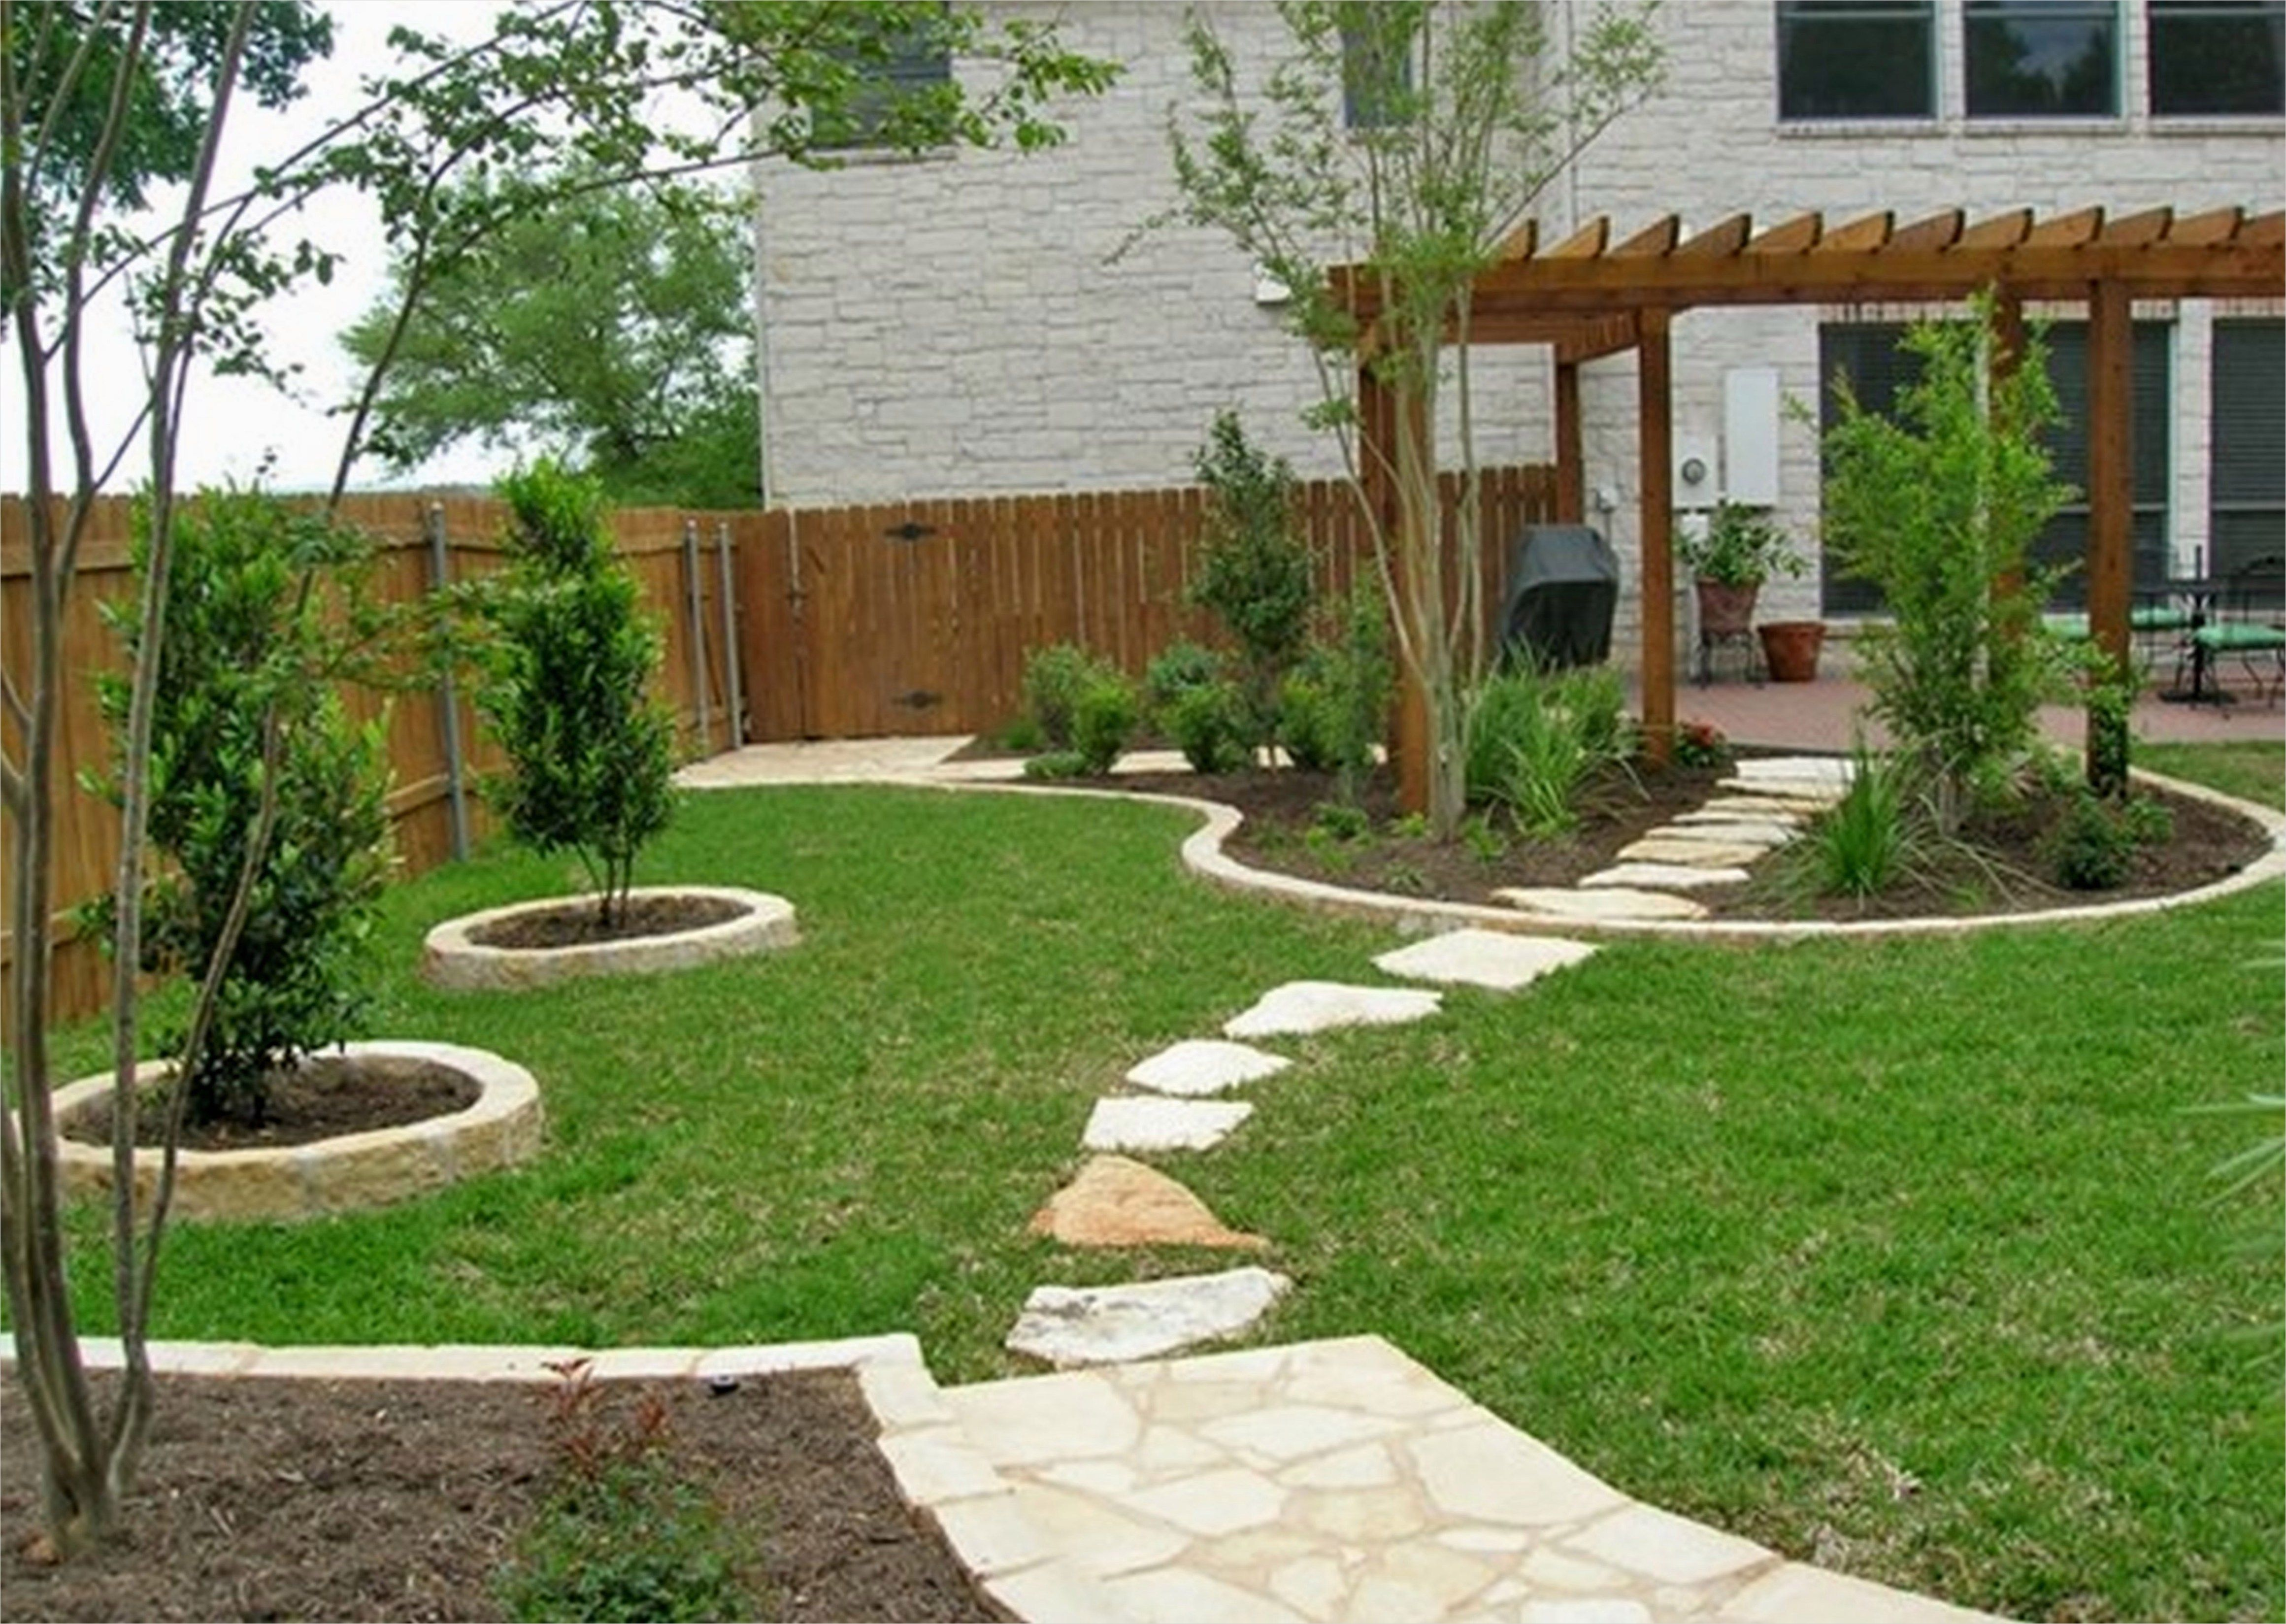 landscaping ideas on a budget 32 - DecoRewarding | Small ...